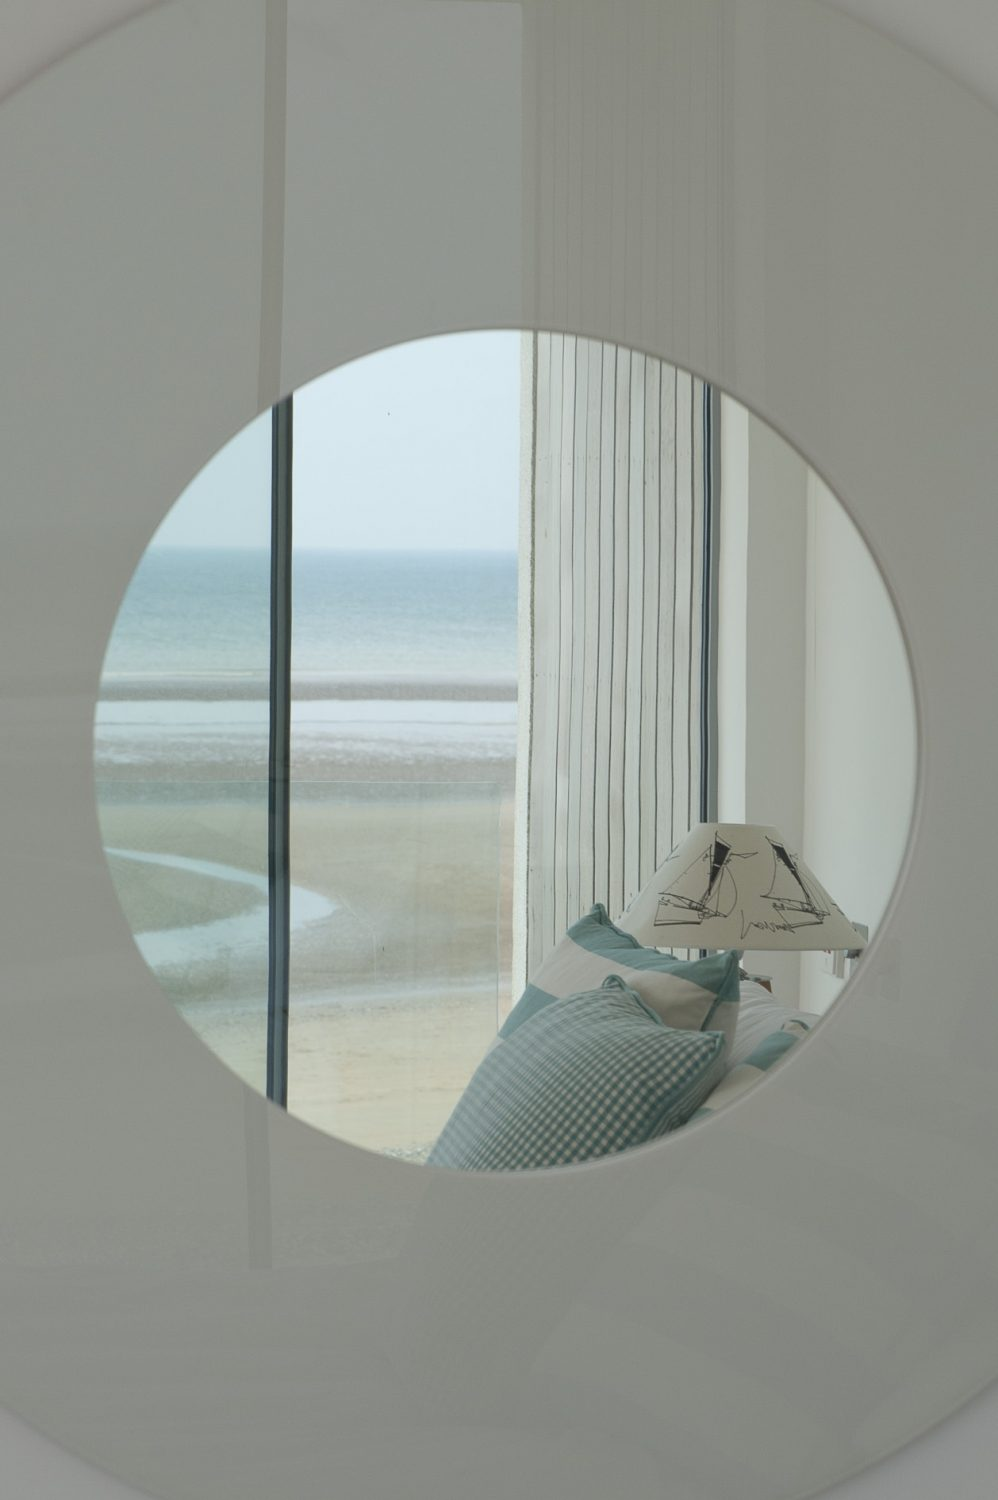 Next door, a large circular mirror on the wall faces the beach